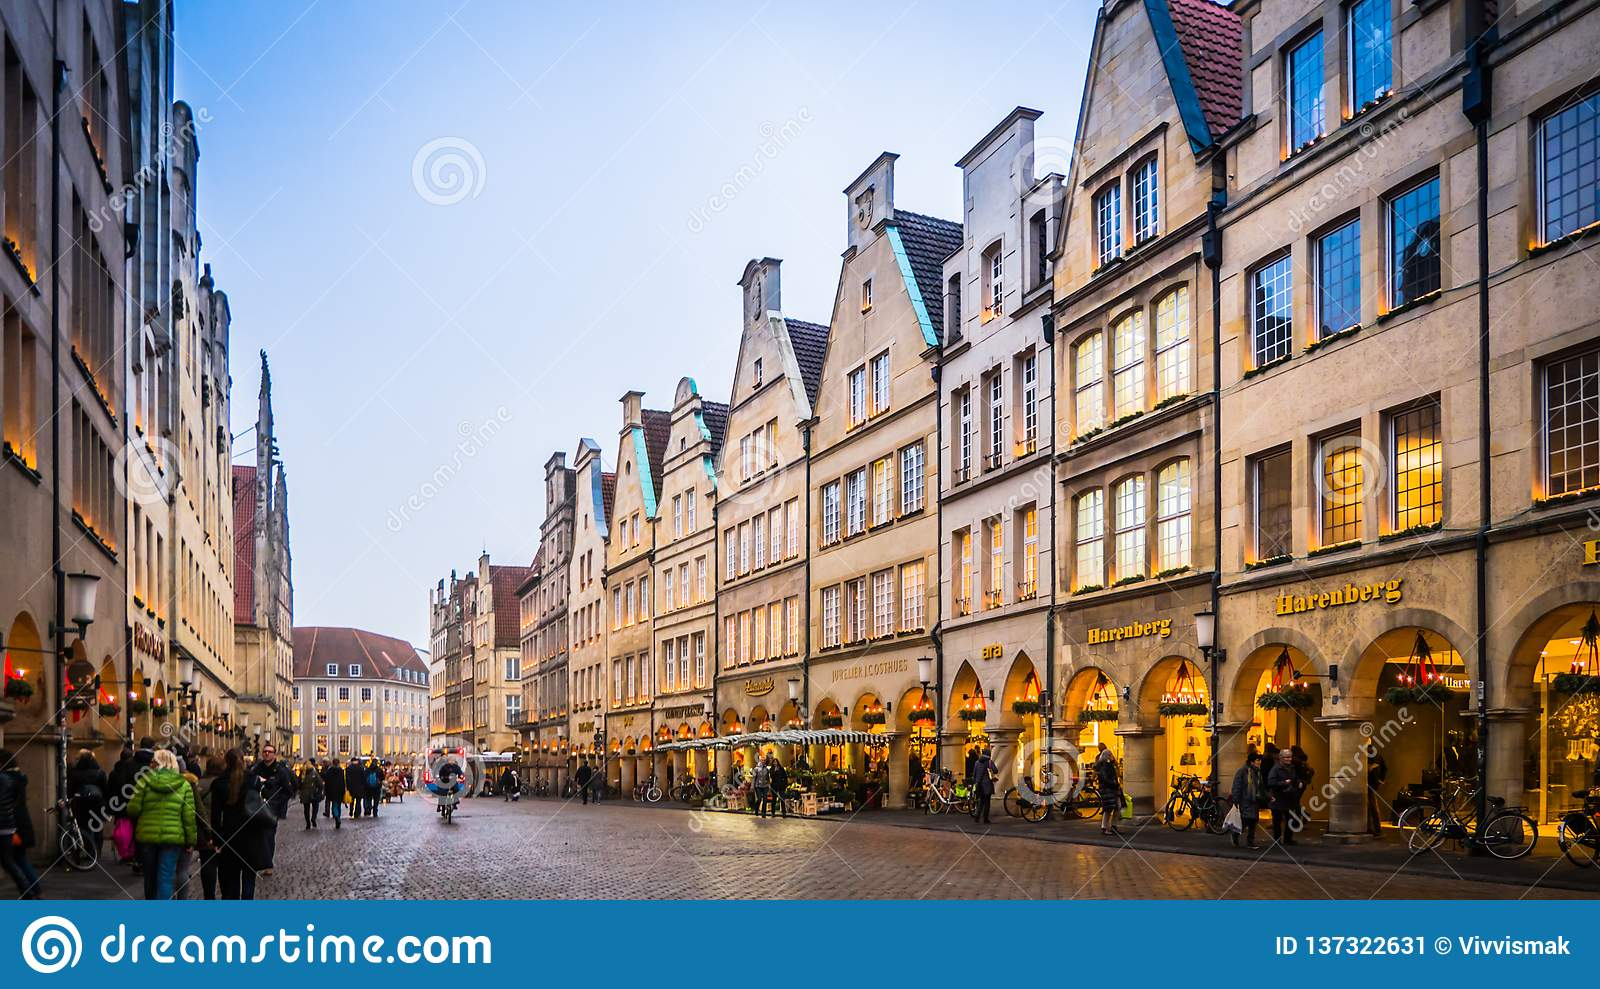 Christmas street decorations in Muenster, Germany